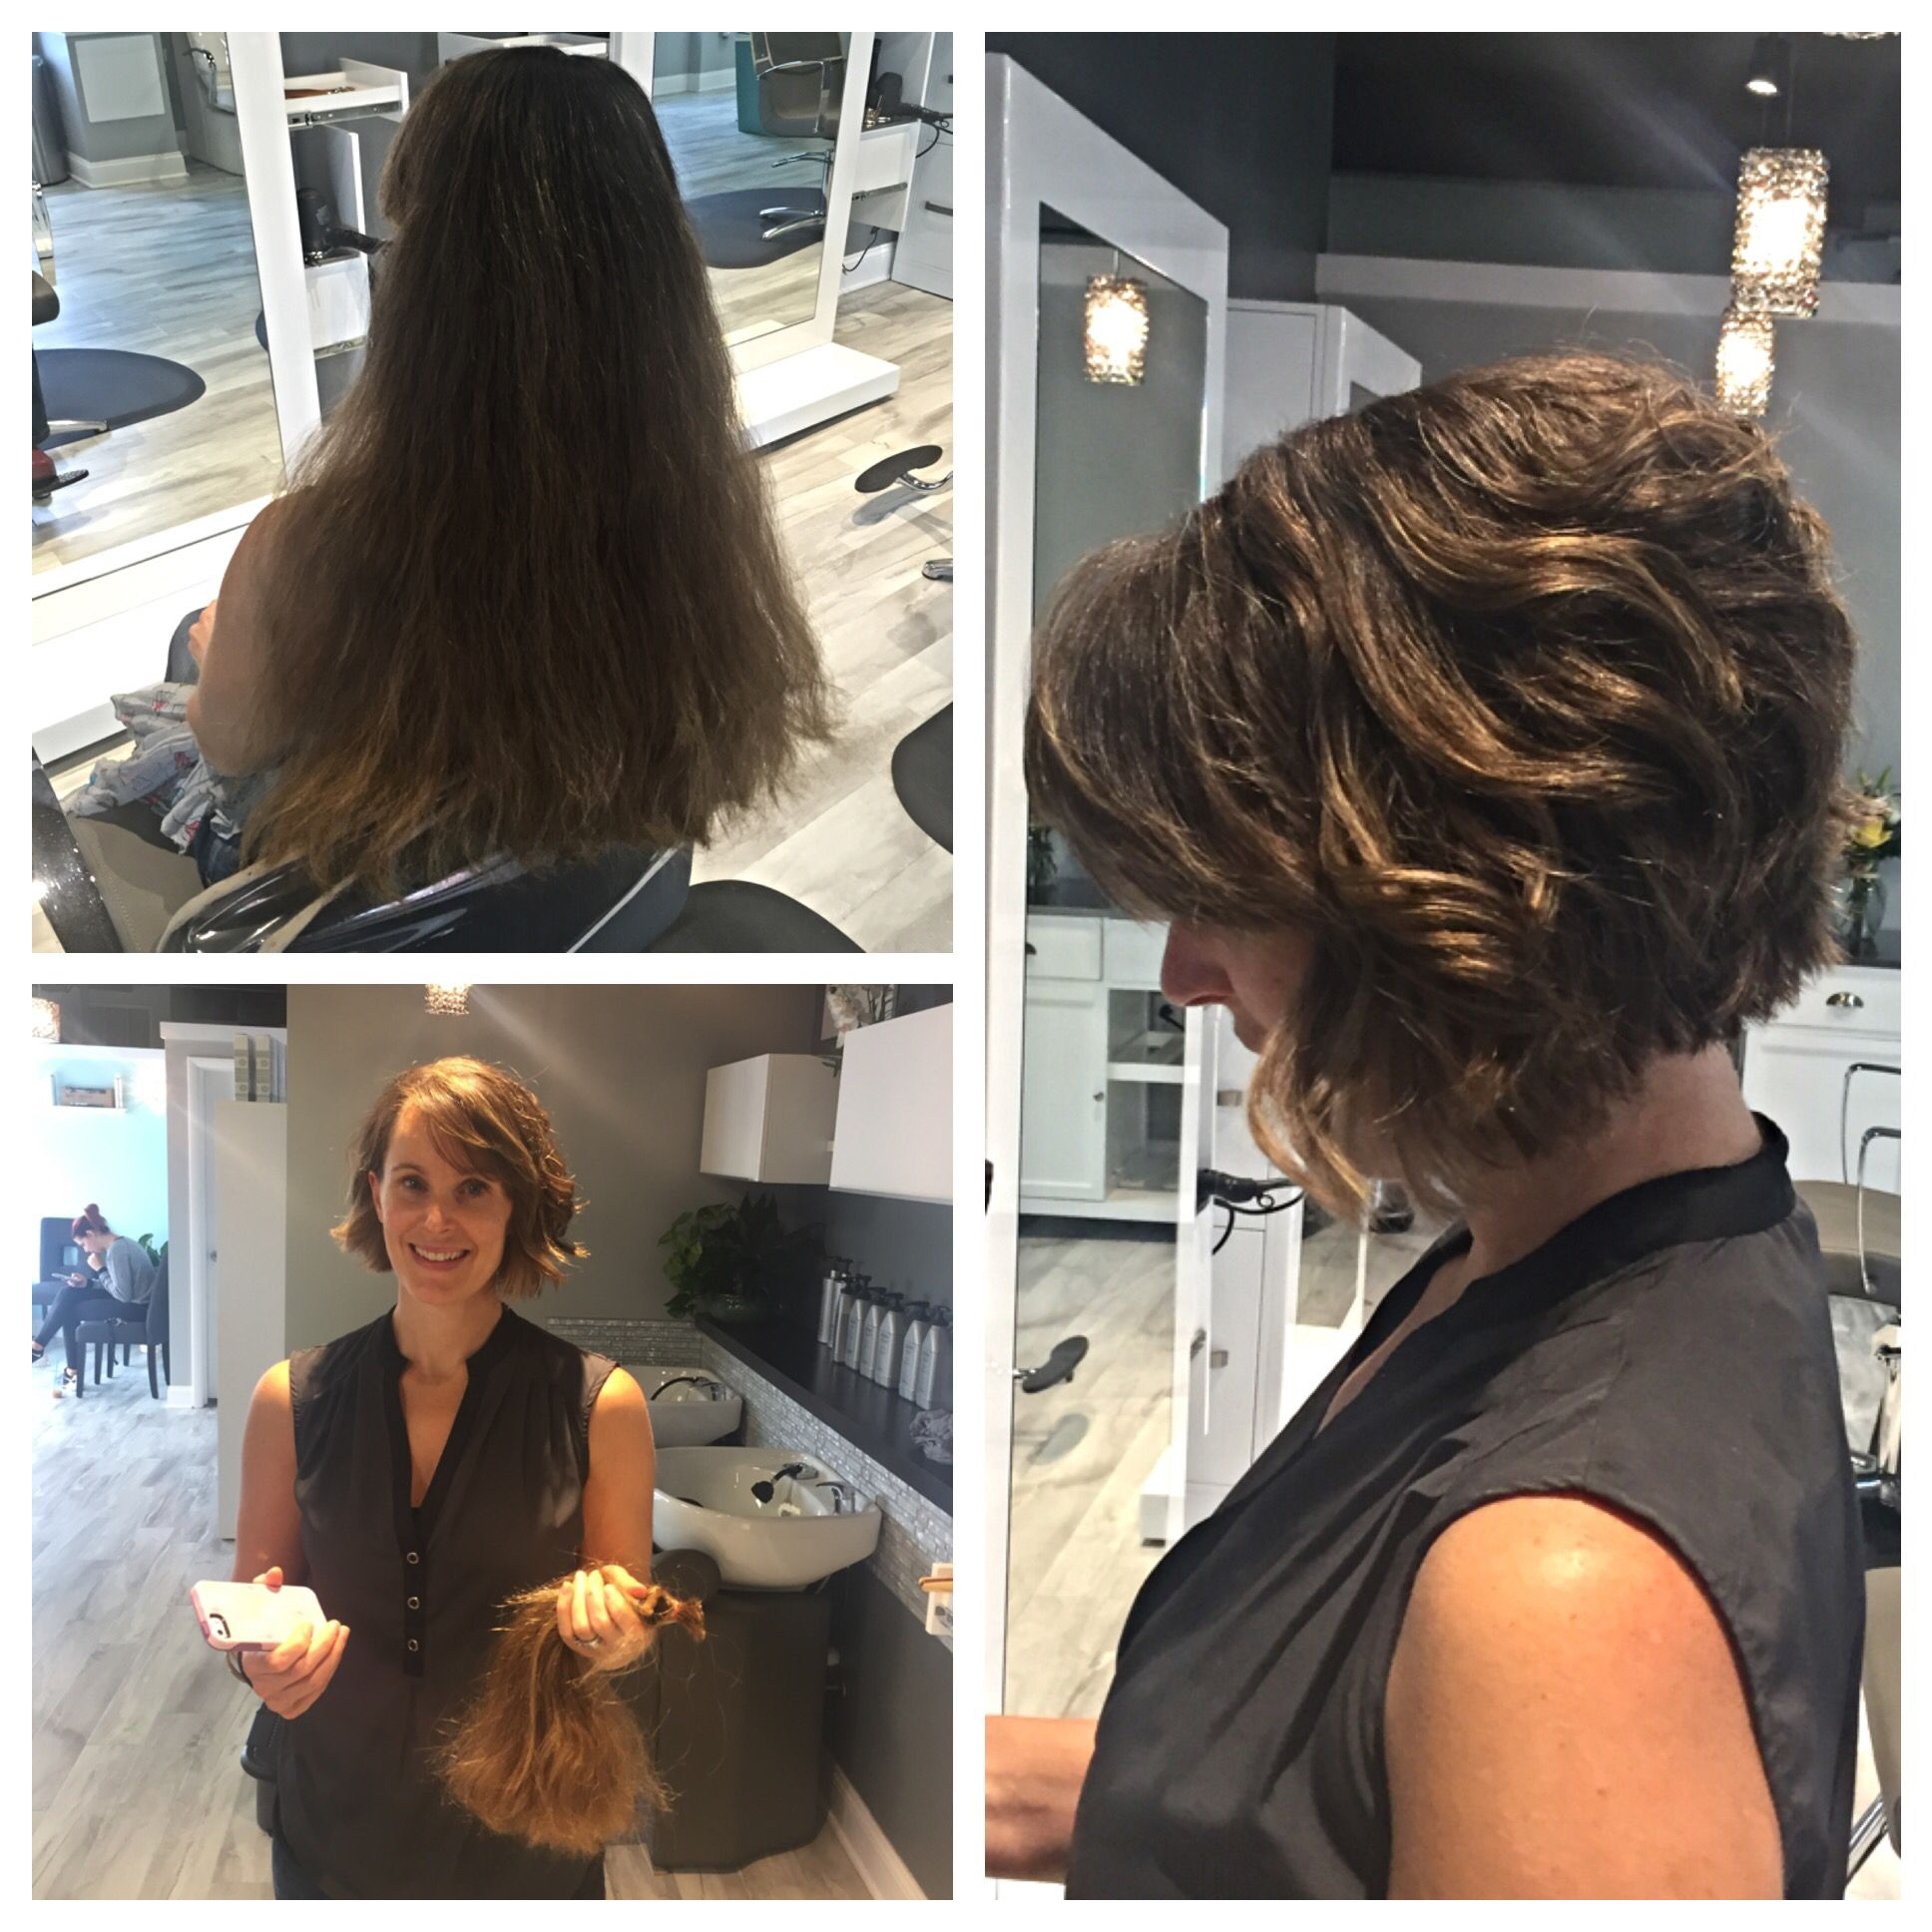 Long hair to a short bob. Hair donation and transformation